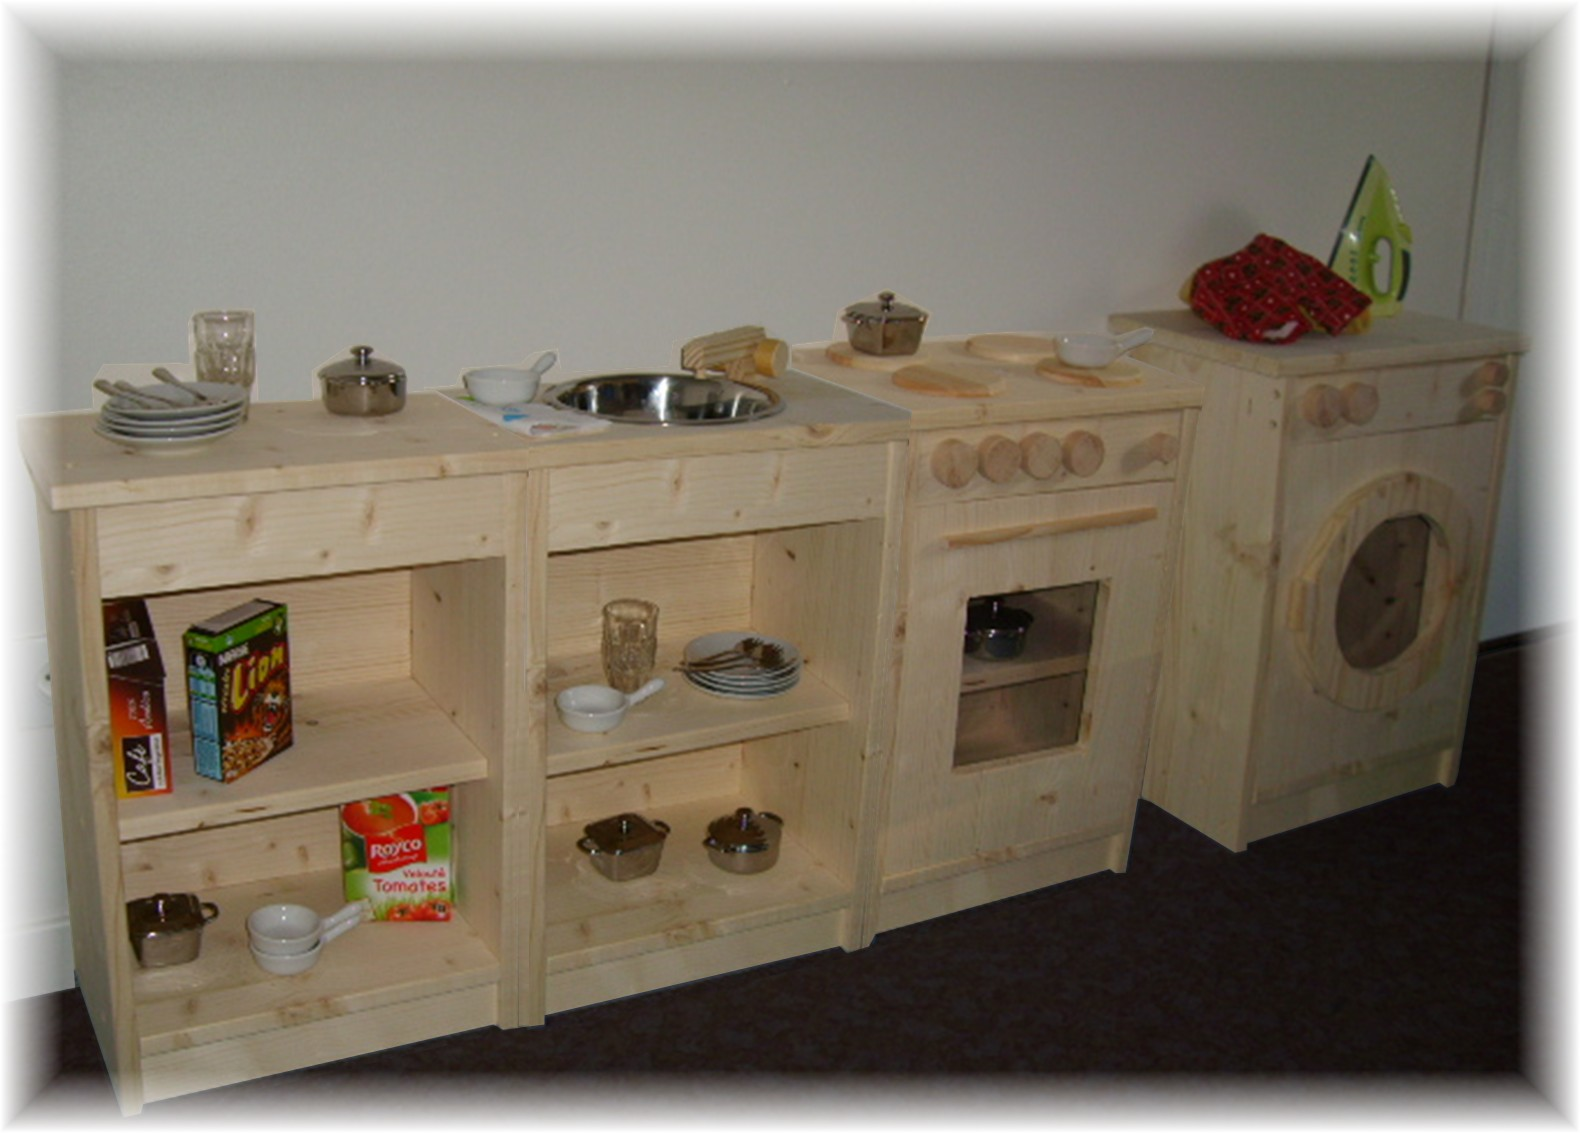 Phil creation cuisine enfant for Vertbaudet cuisine en bois